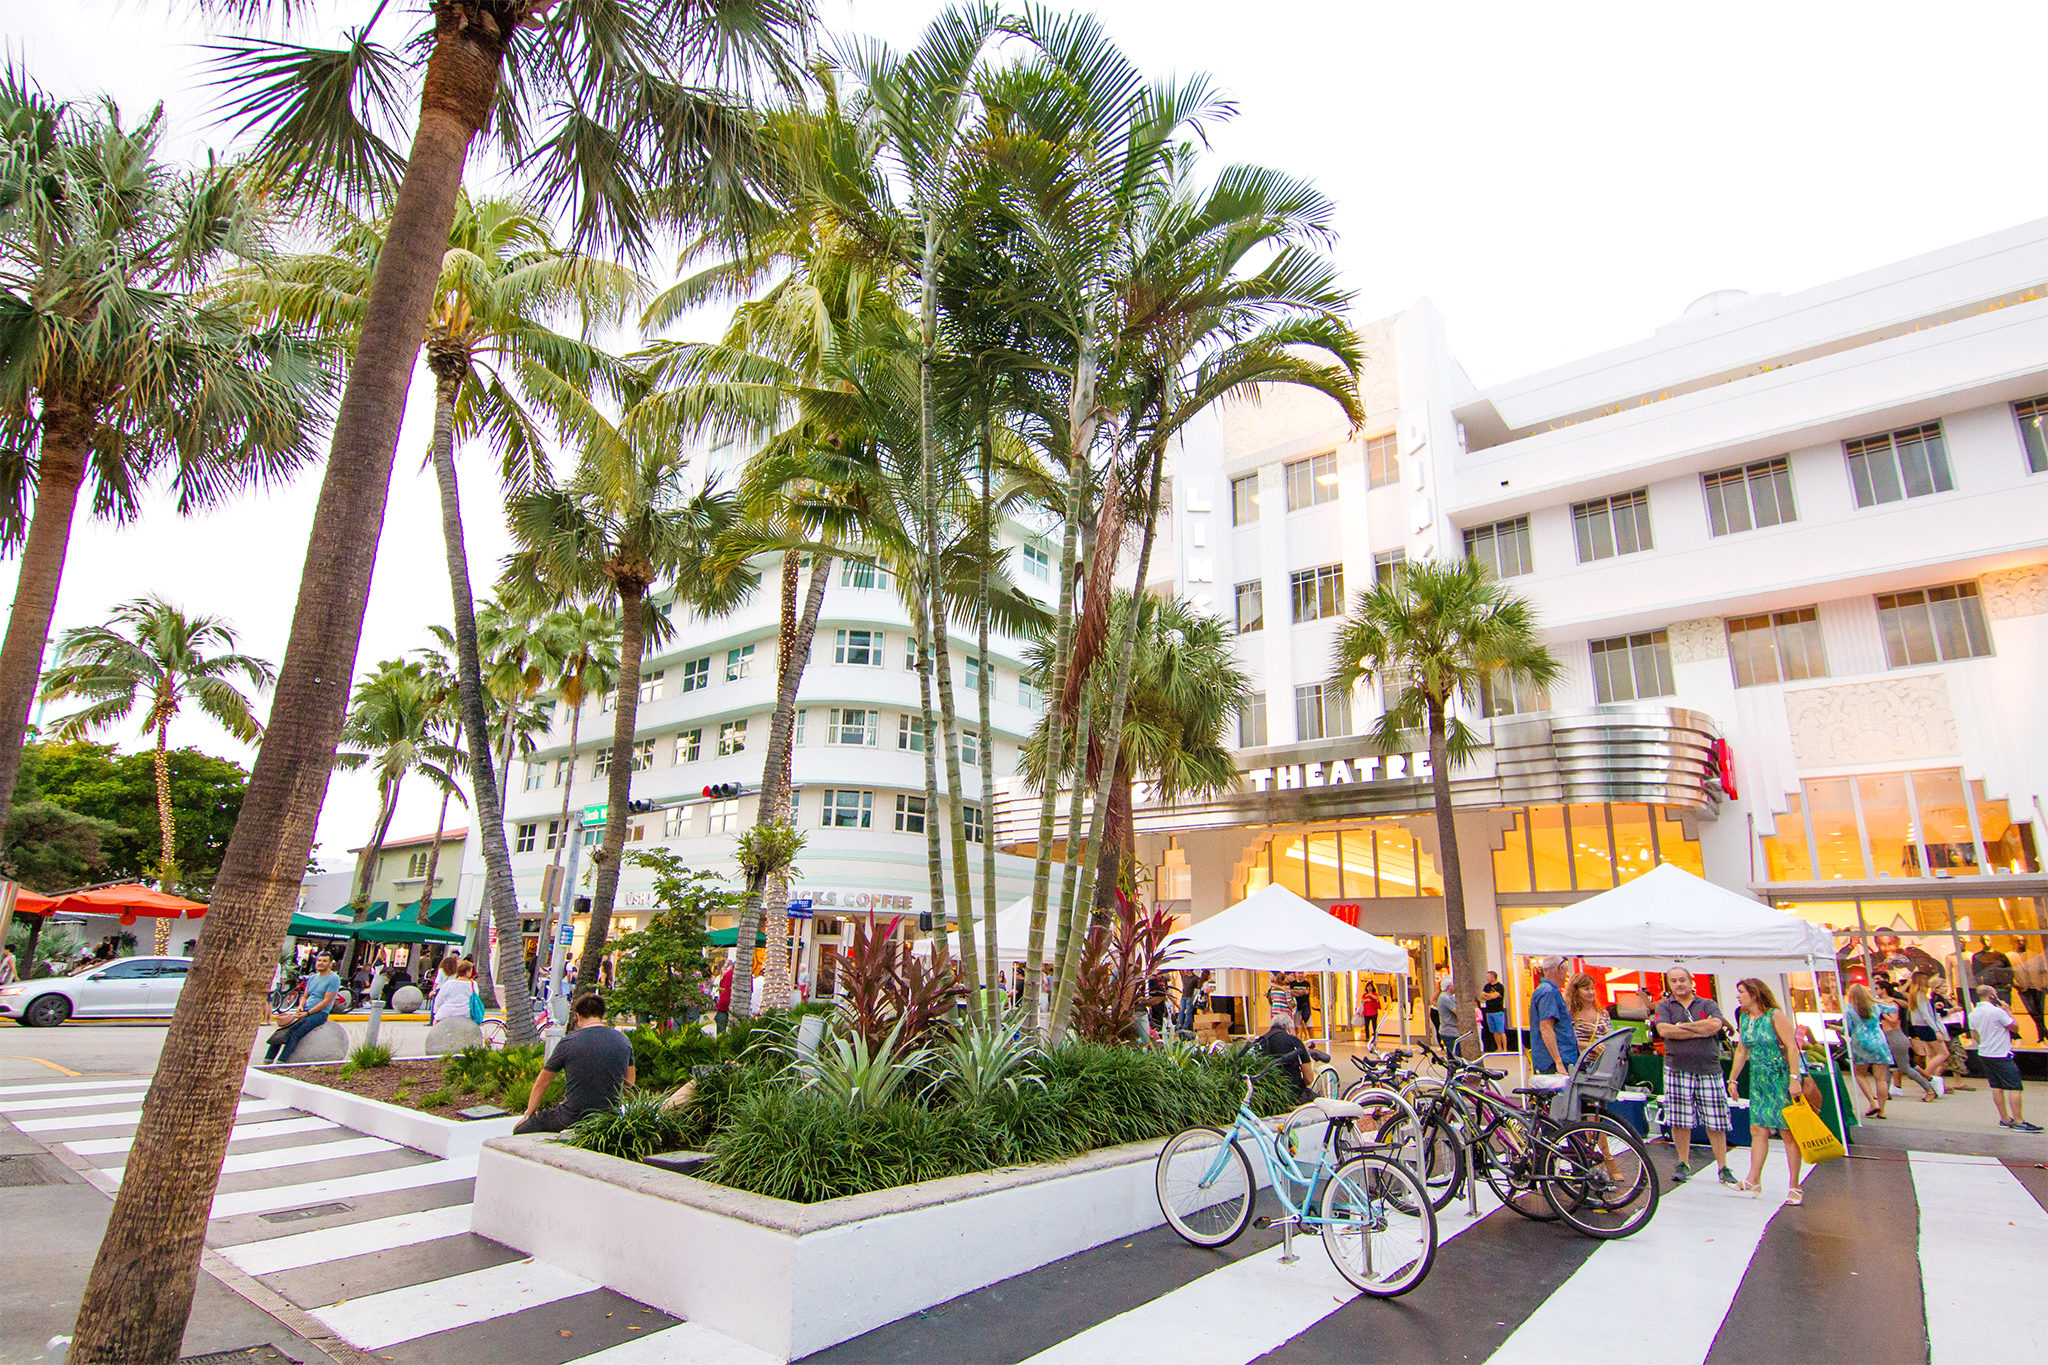 Oct 10,  · Extending from the Atlantic Ocean to the east and Biscayne Bay to the west on Miami Beach, FL, Lincoln Road features various shops, cafés, galleries, restaurants, bars /5(16K).